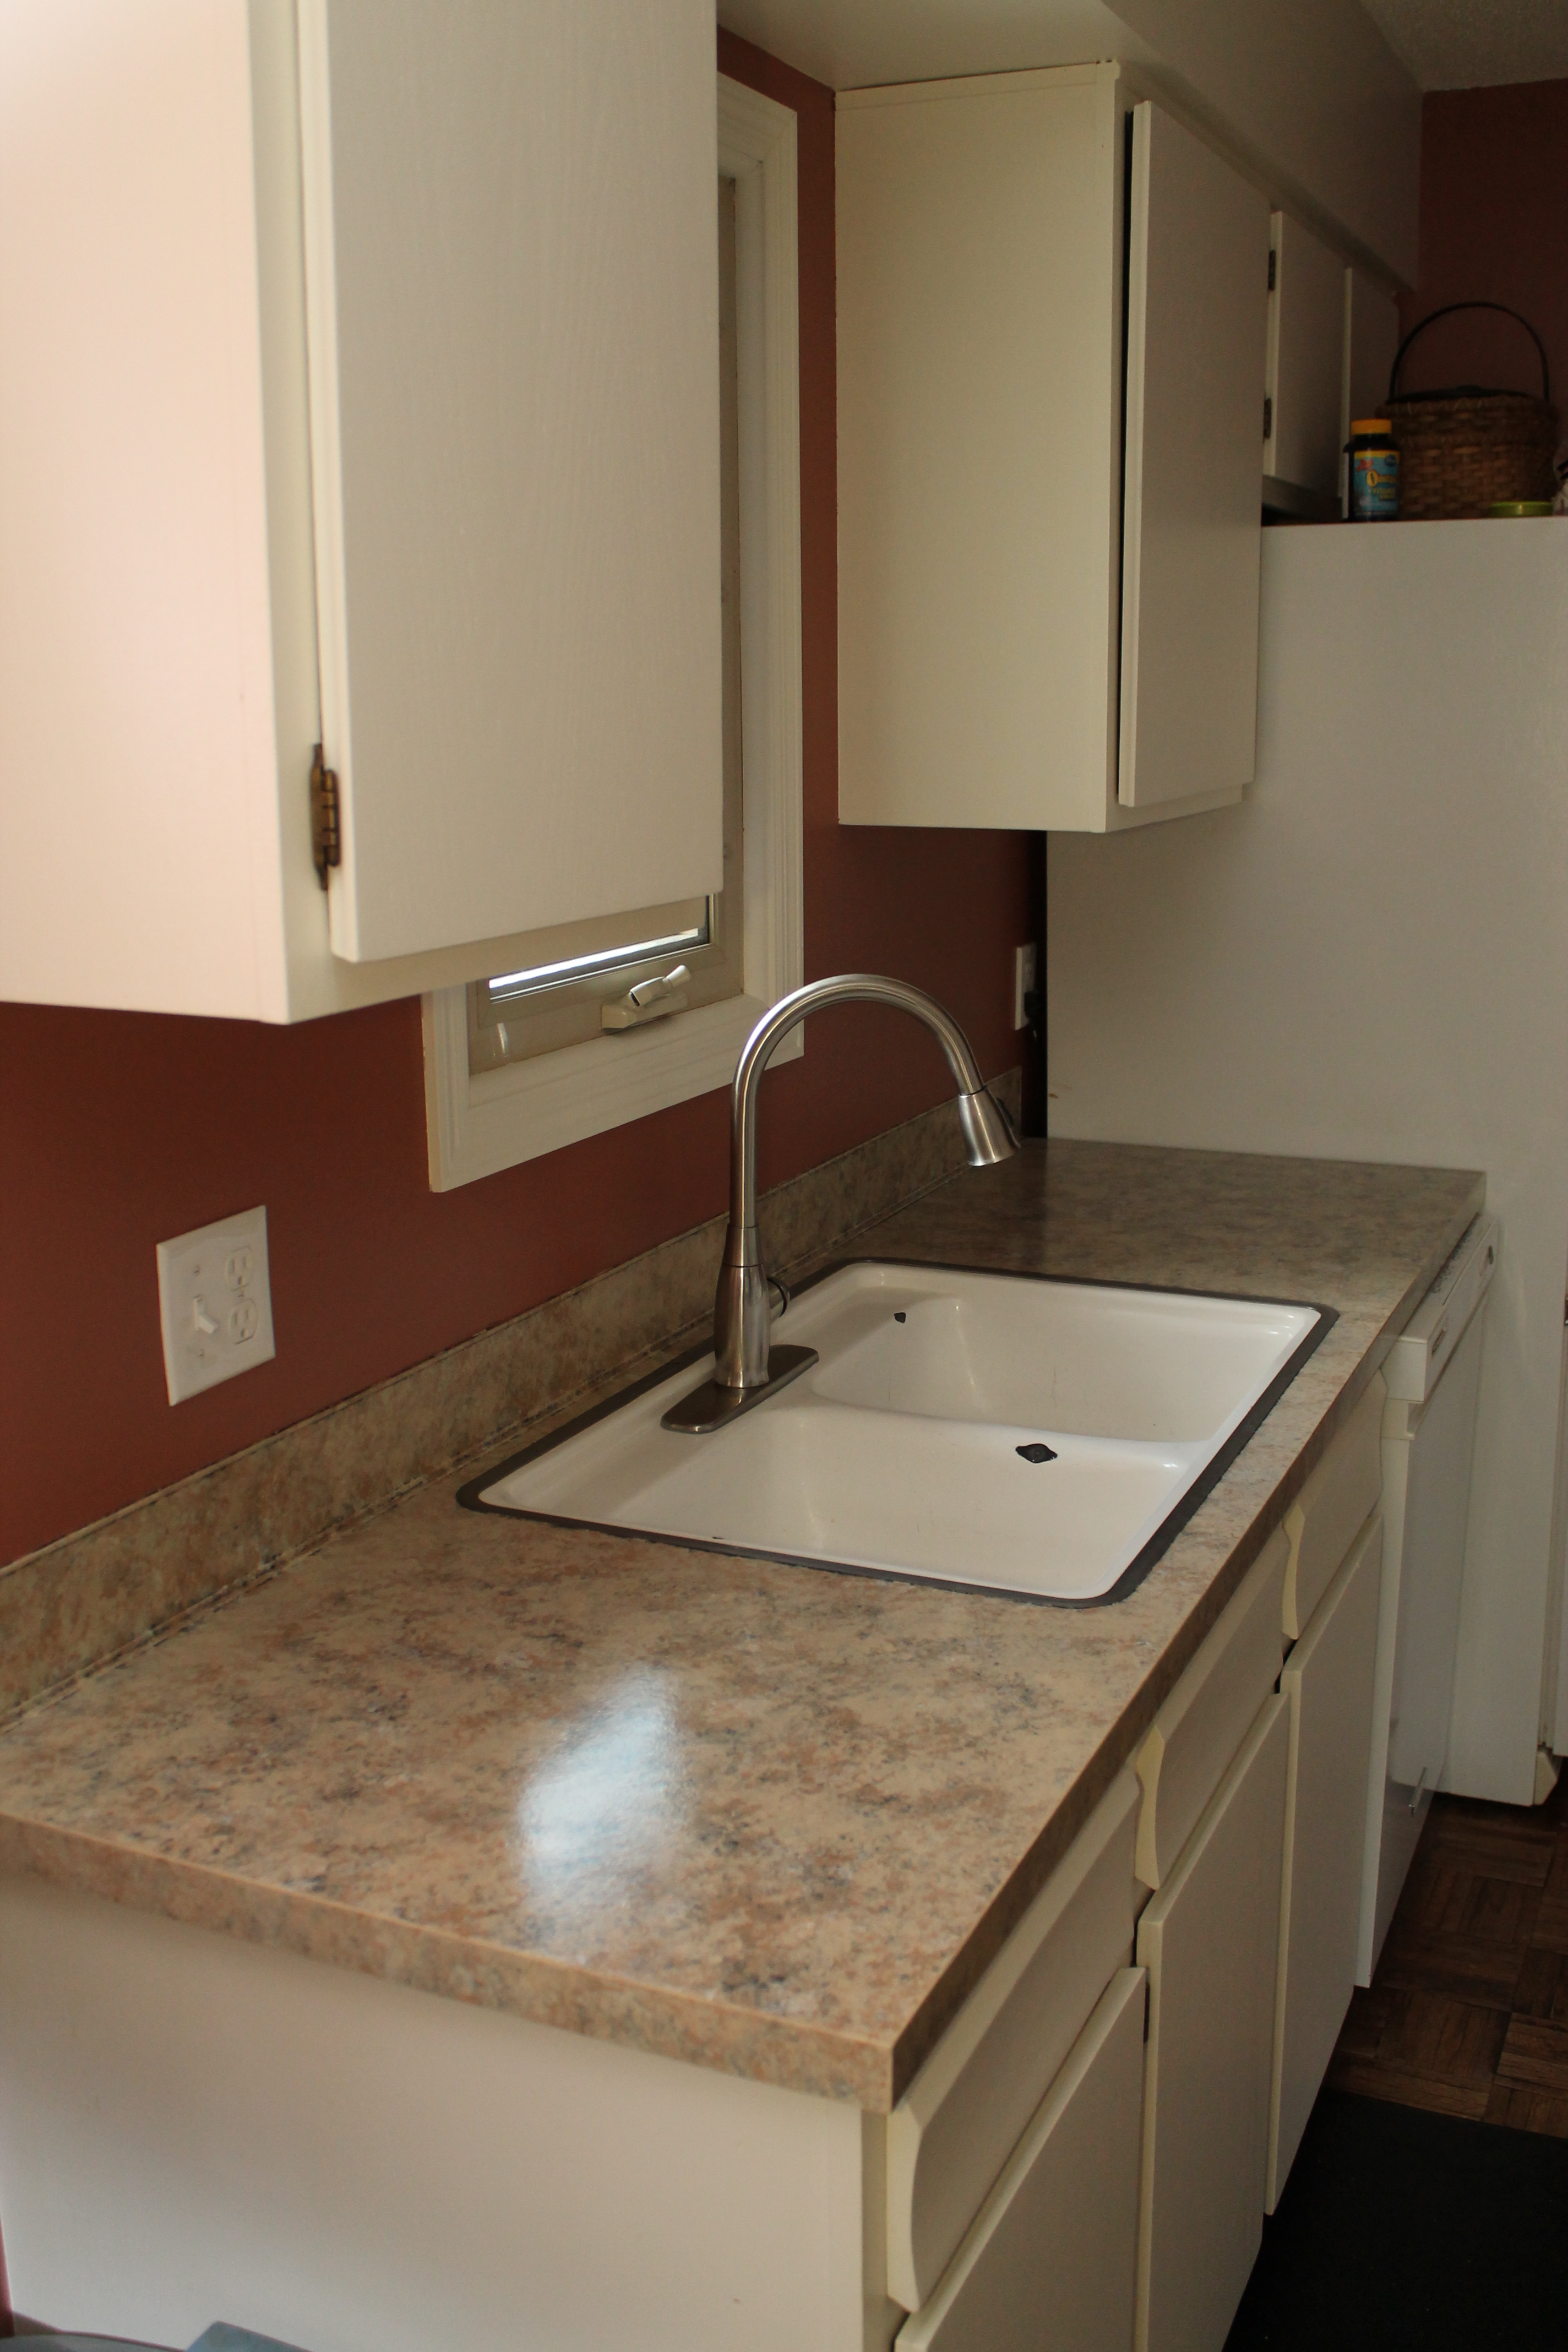 Countertop Paint Tutorial : Tutorial on Painting Kitchen Countertops - Country Style Accents